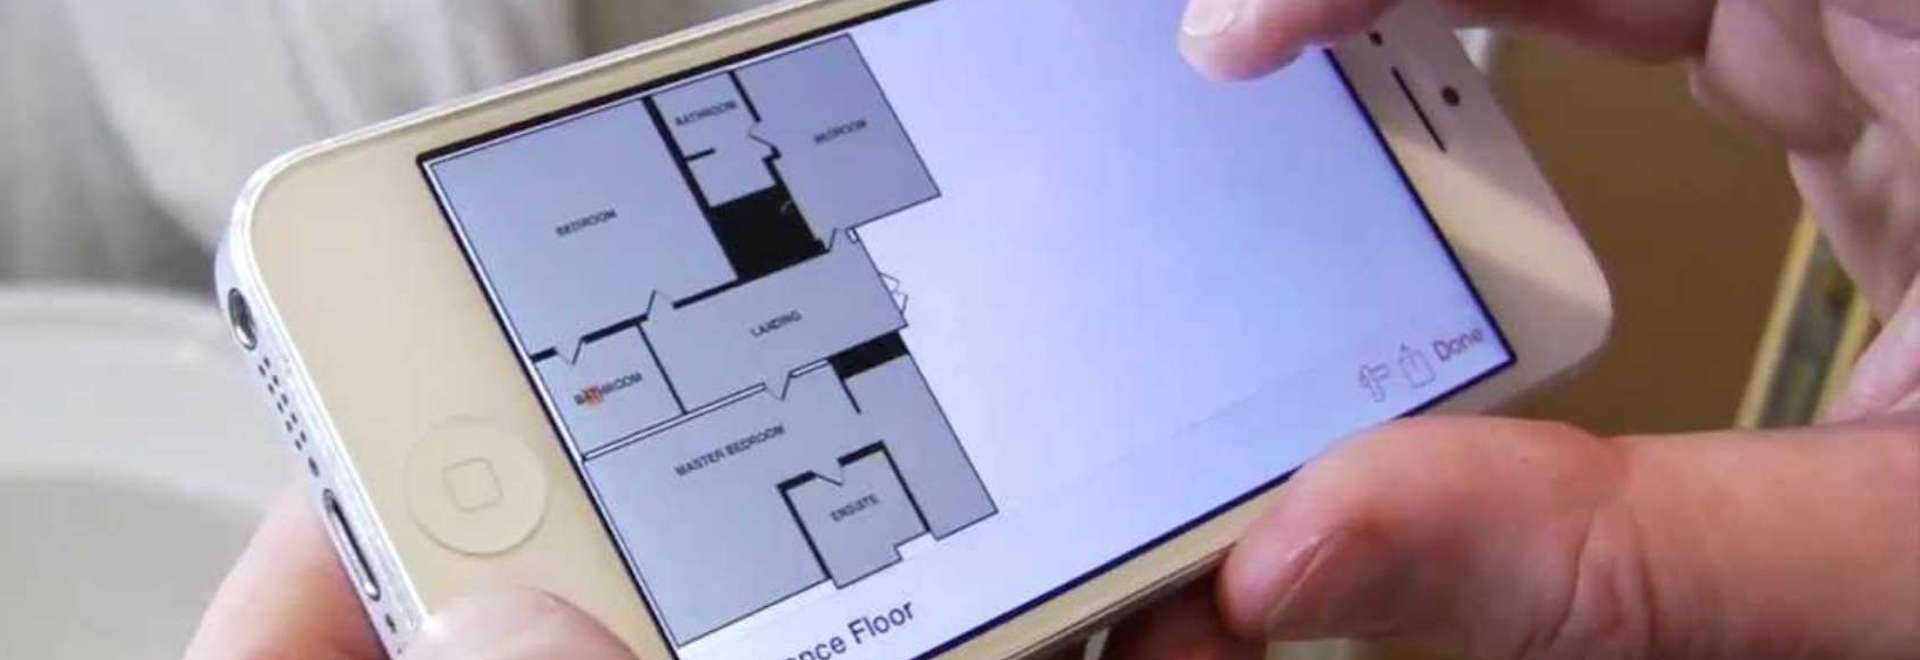 Easy Floor Plans with RoomScan